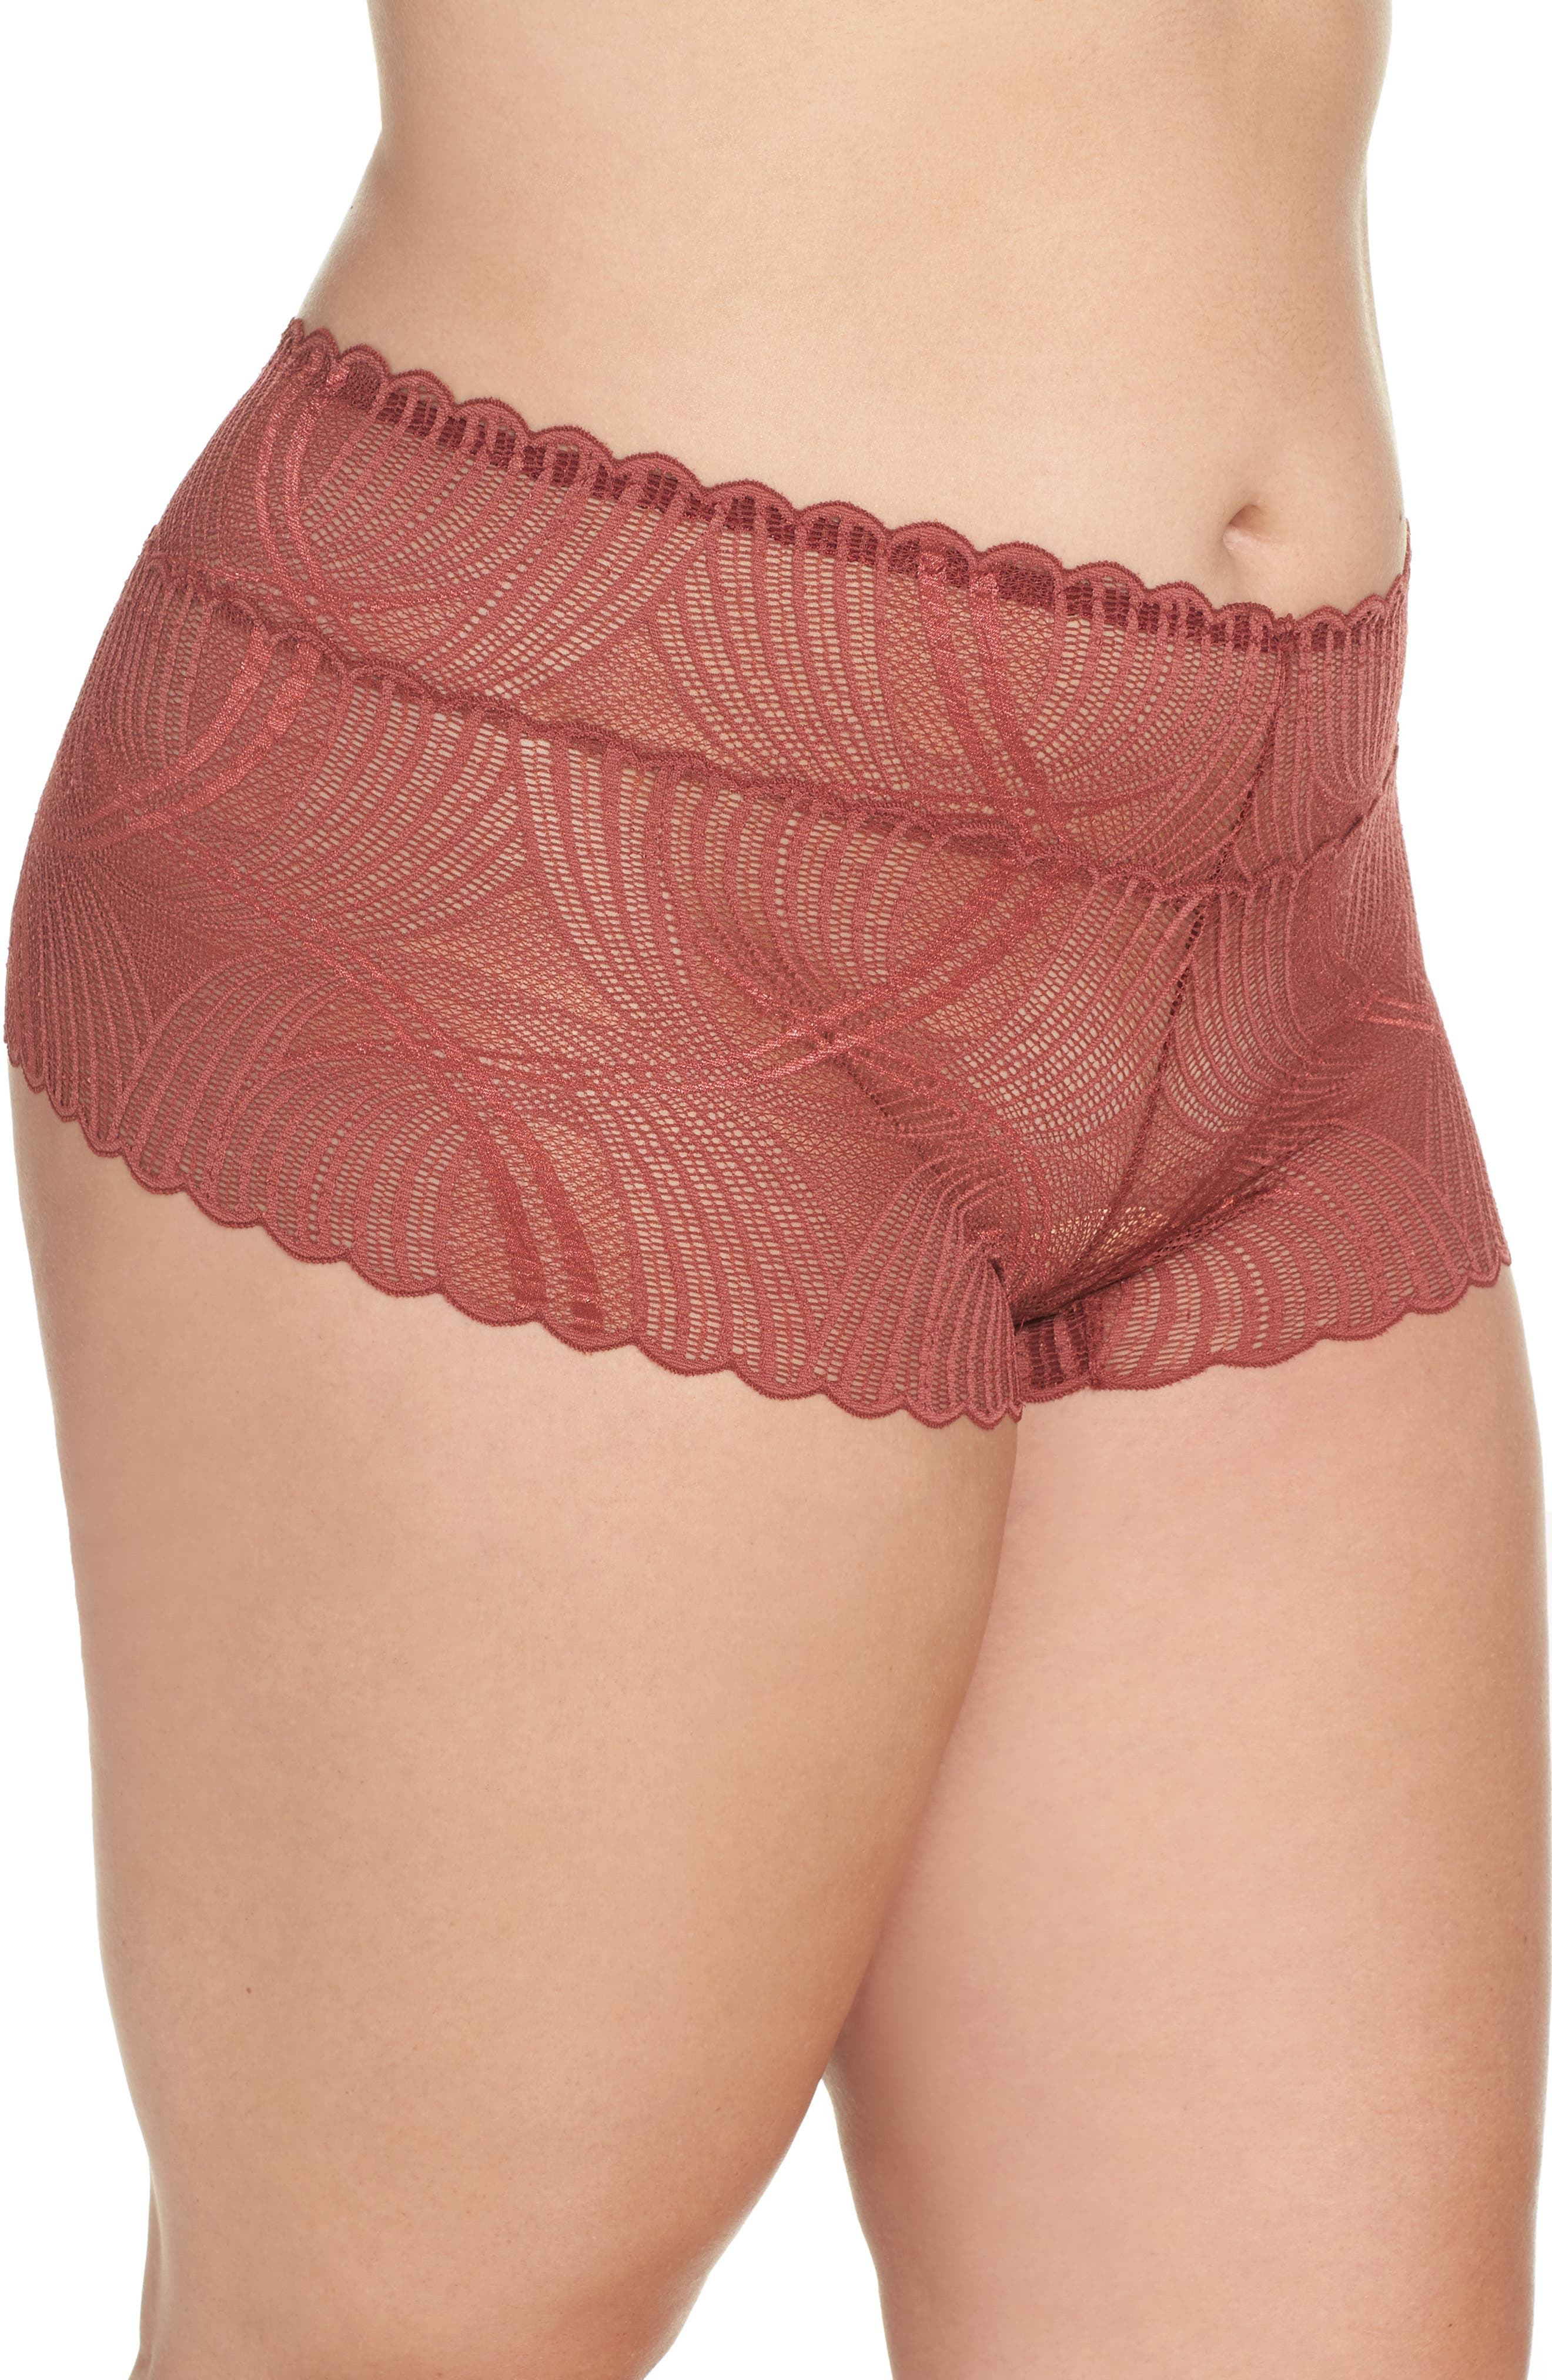 Minoa Naughtie Open Gusset Boyshorts,                             Alternate thumbnail 12, color,